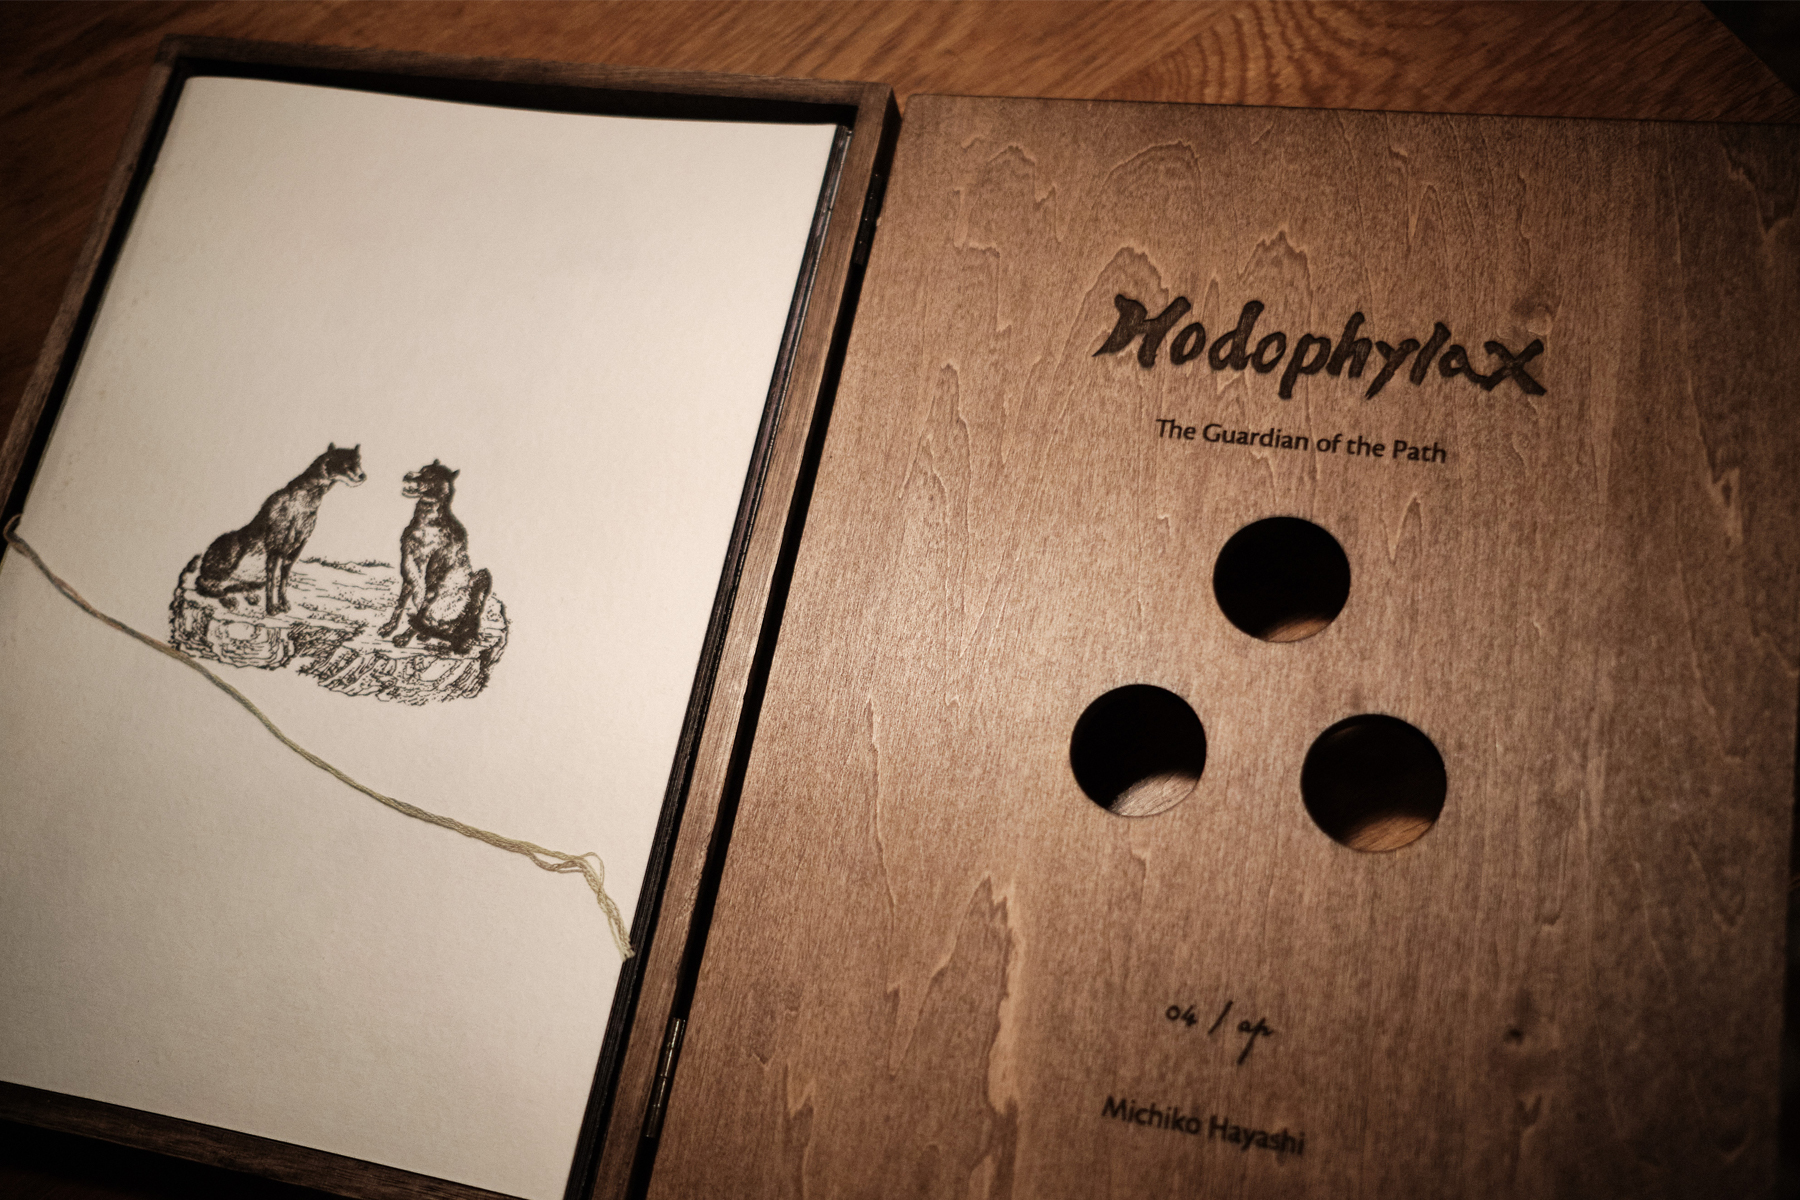 A numbered copy of Hodophylax: The Guardian of the Path. THOMAS DELSOL / HANS LUCAS